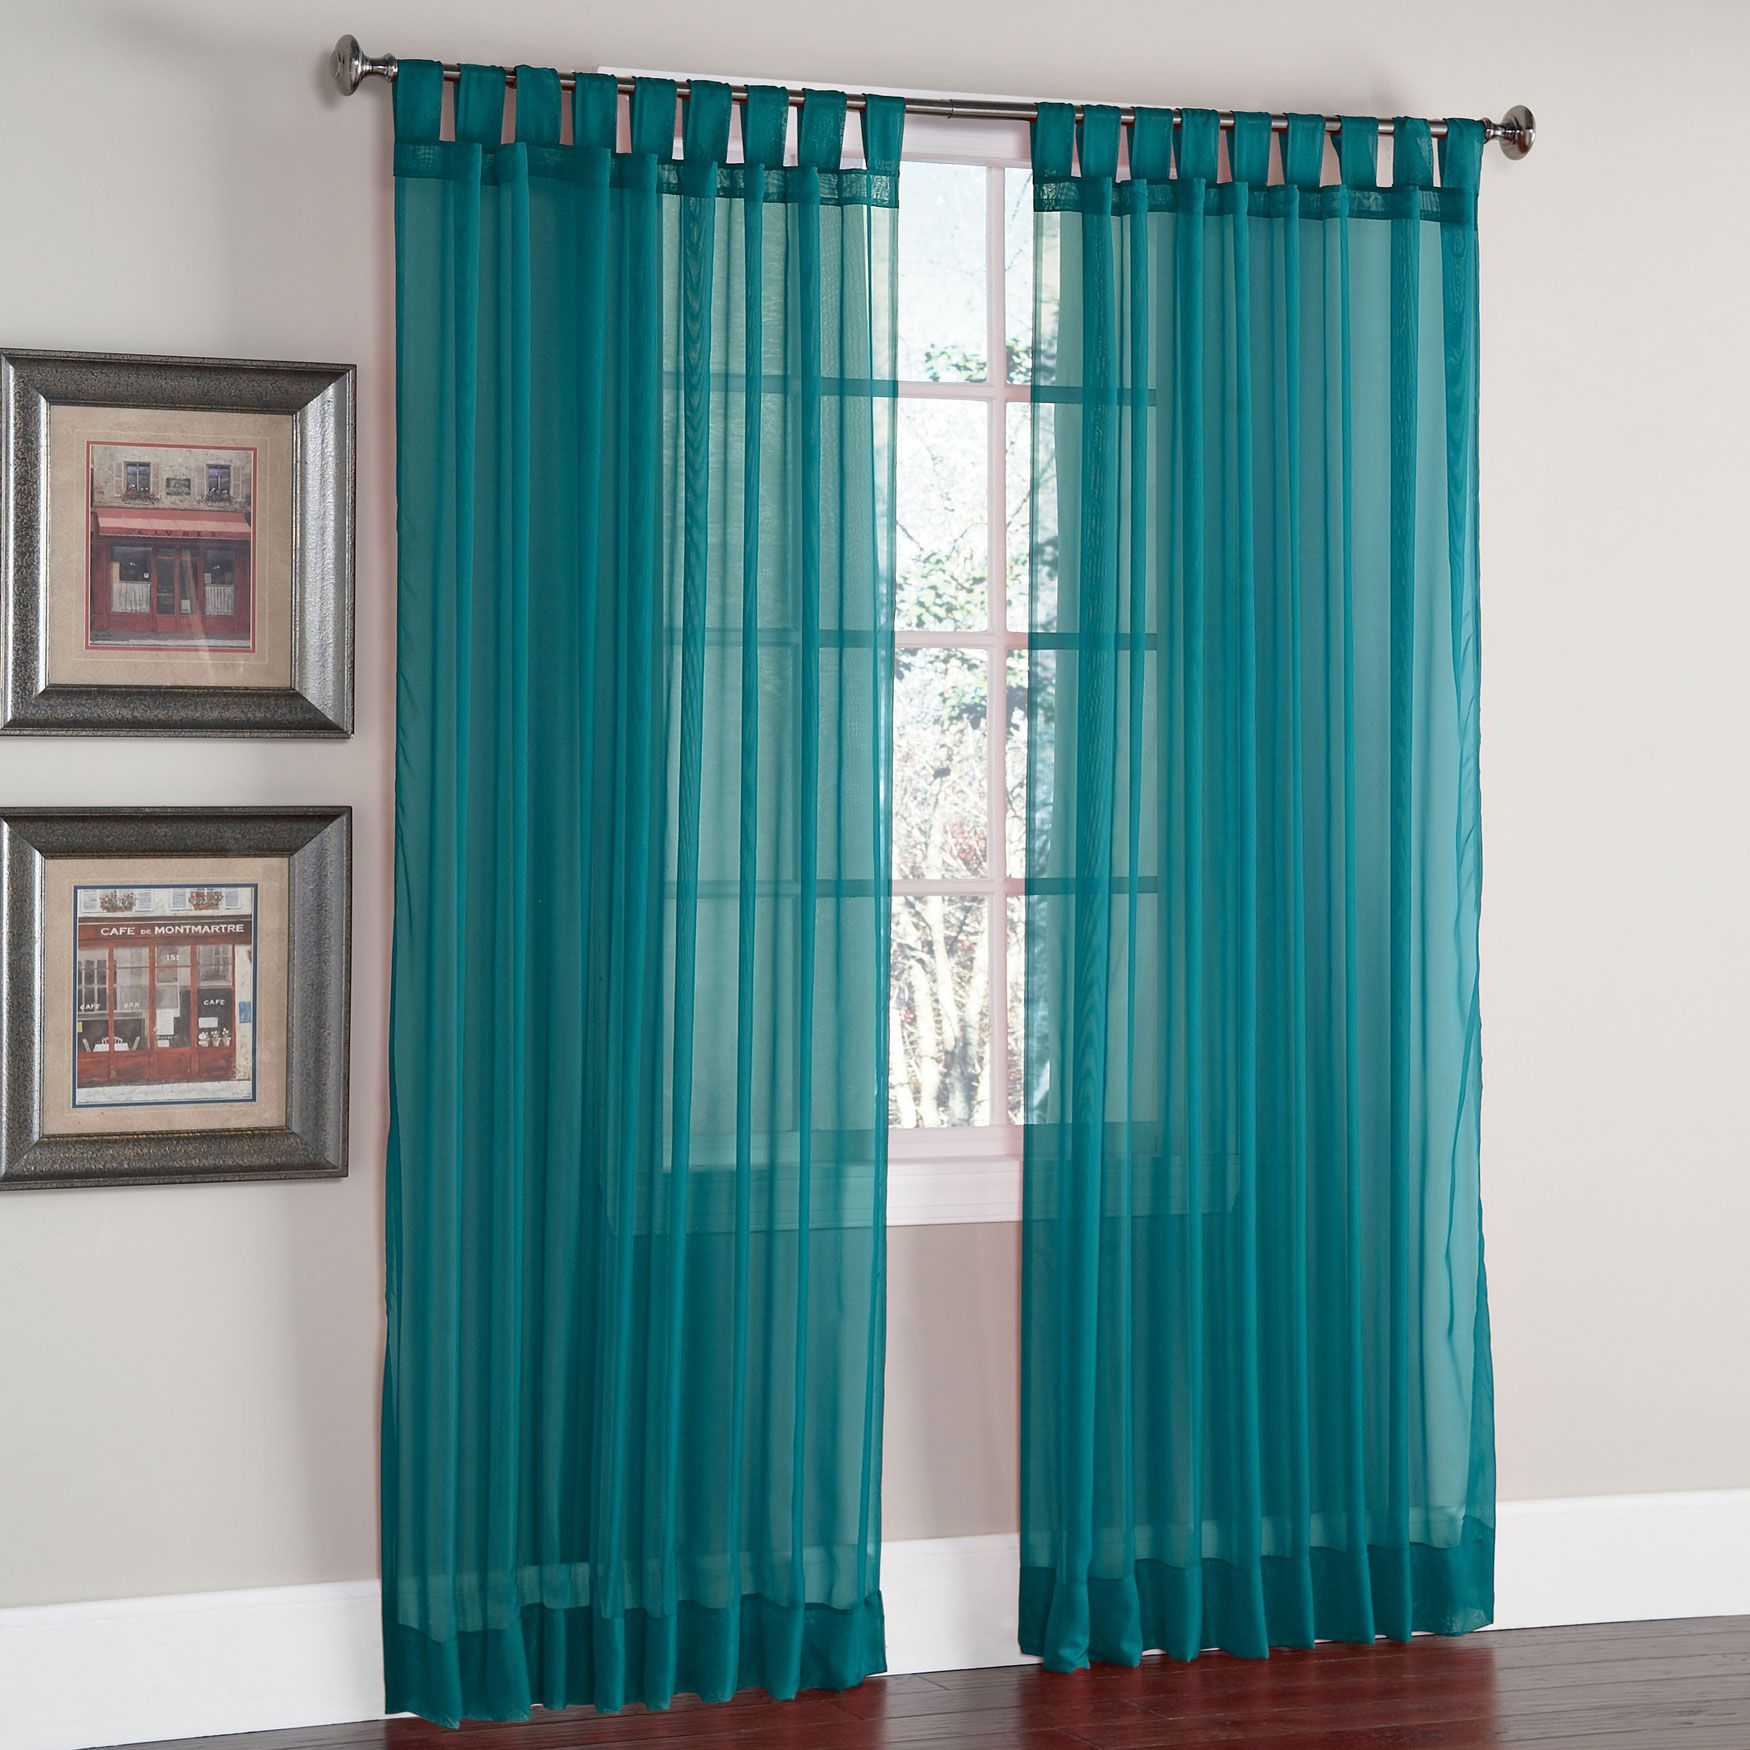 Living Room Curtains Home Ideas Pinterest Living Room Curtains Living Rooms And Room